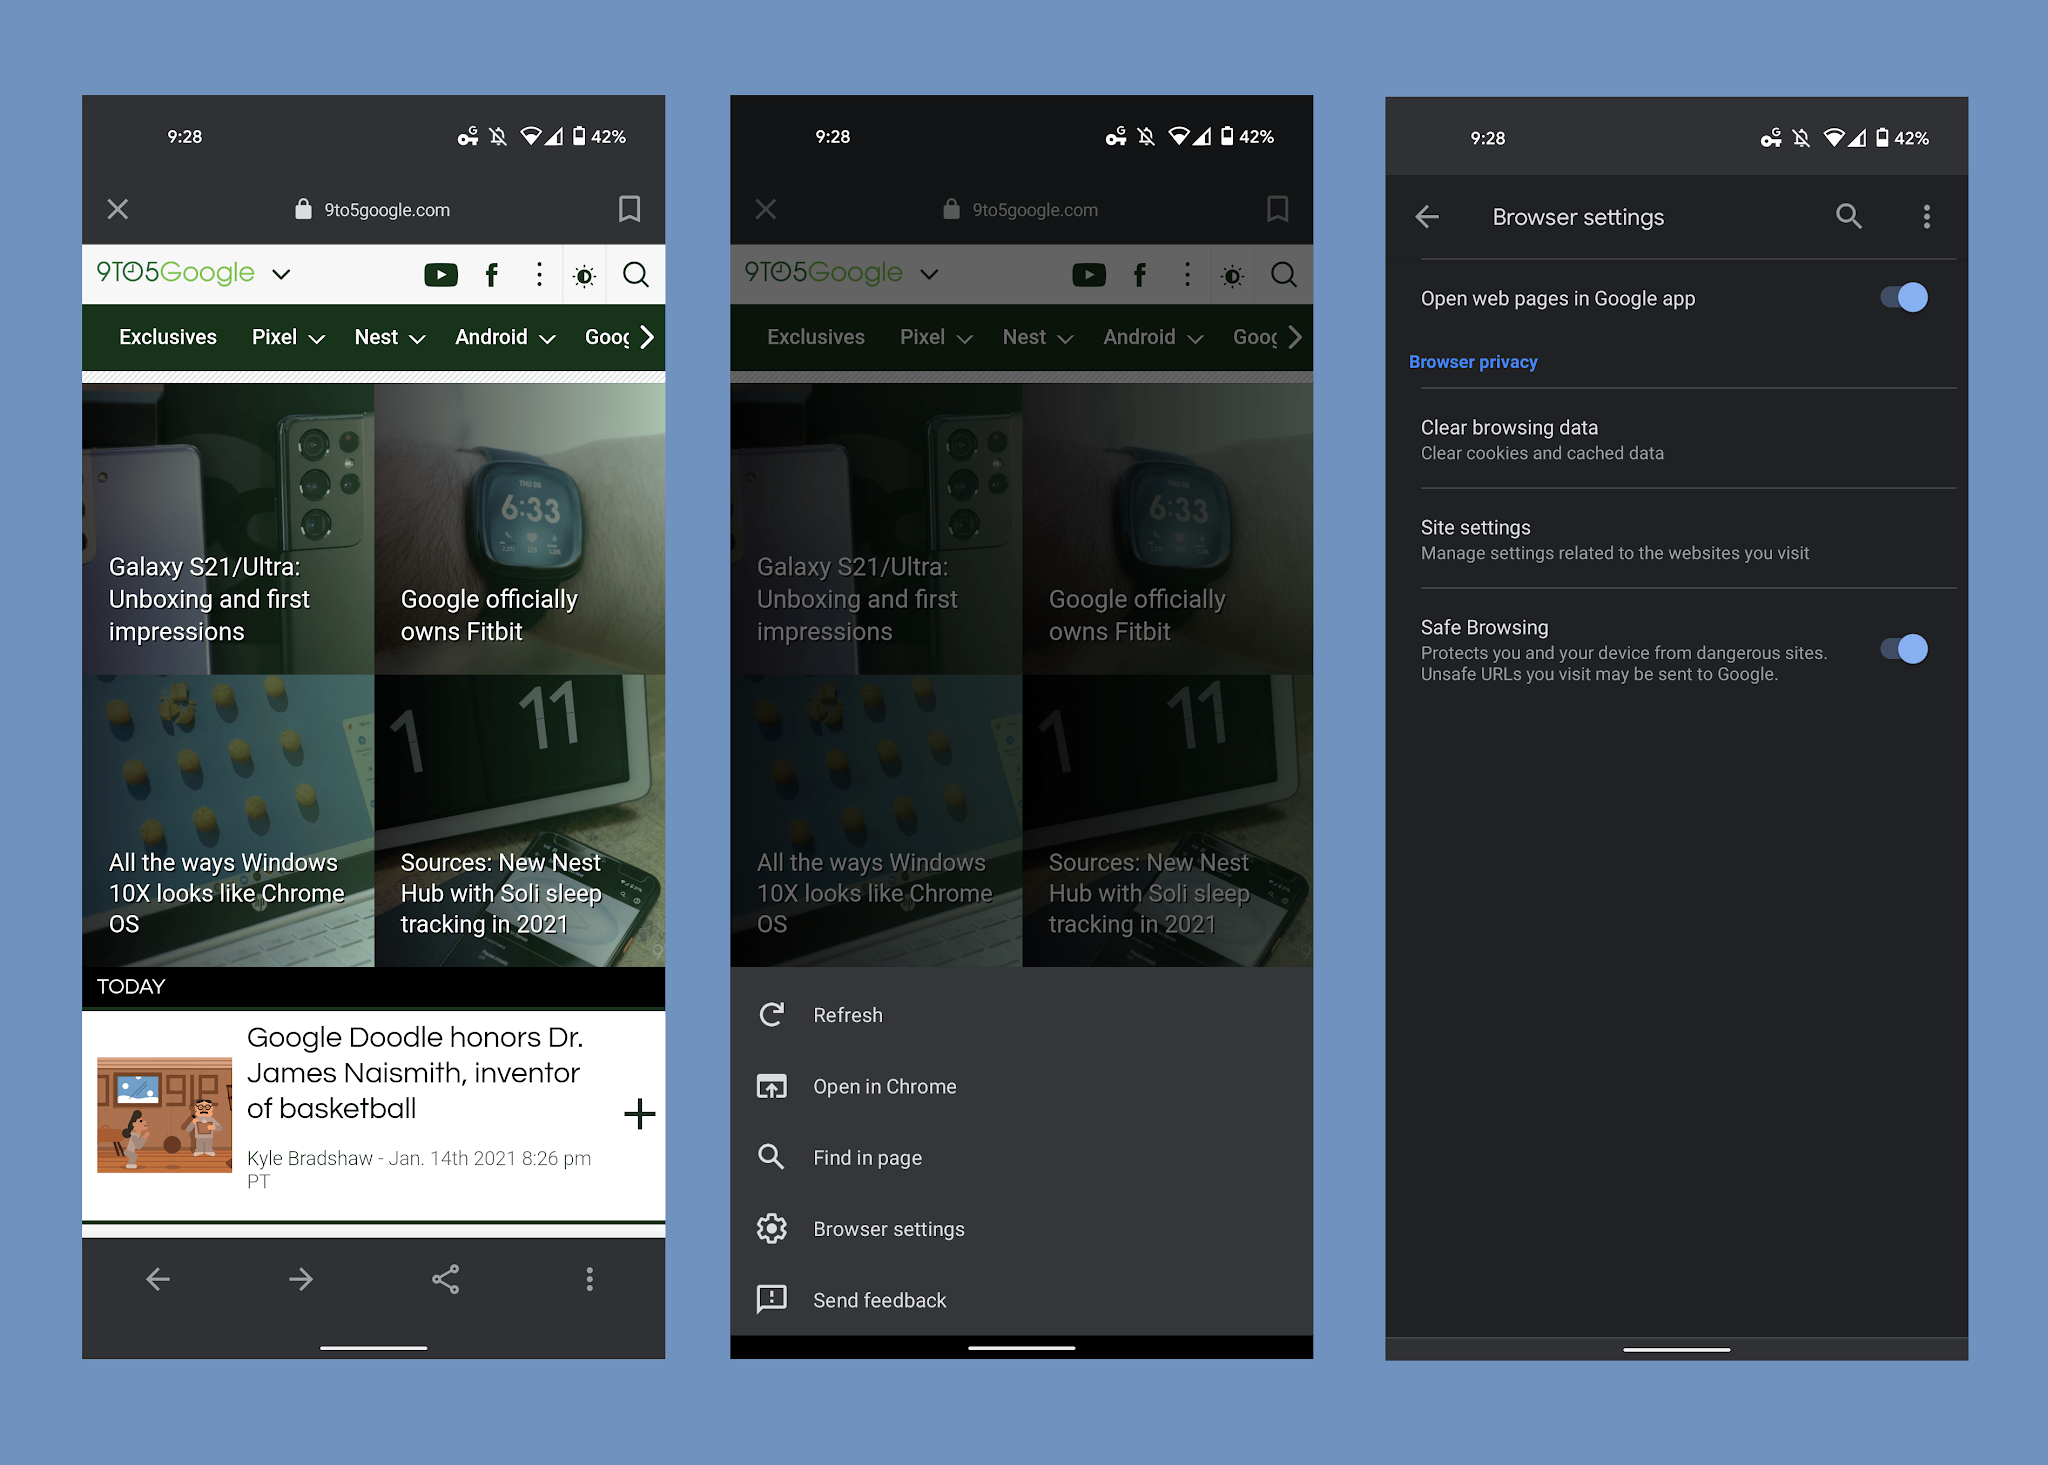 Google Testing in App Browser Redesign with the Bottom Bar in the Google Apps for Android - Digital Information World